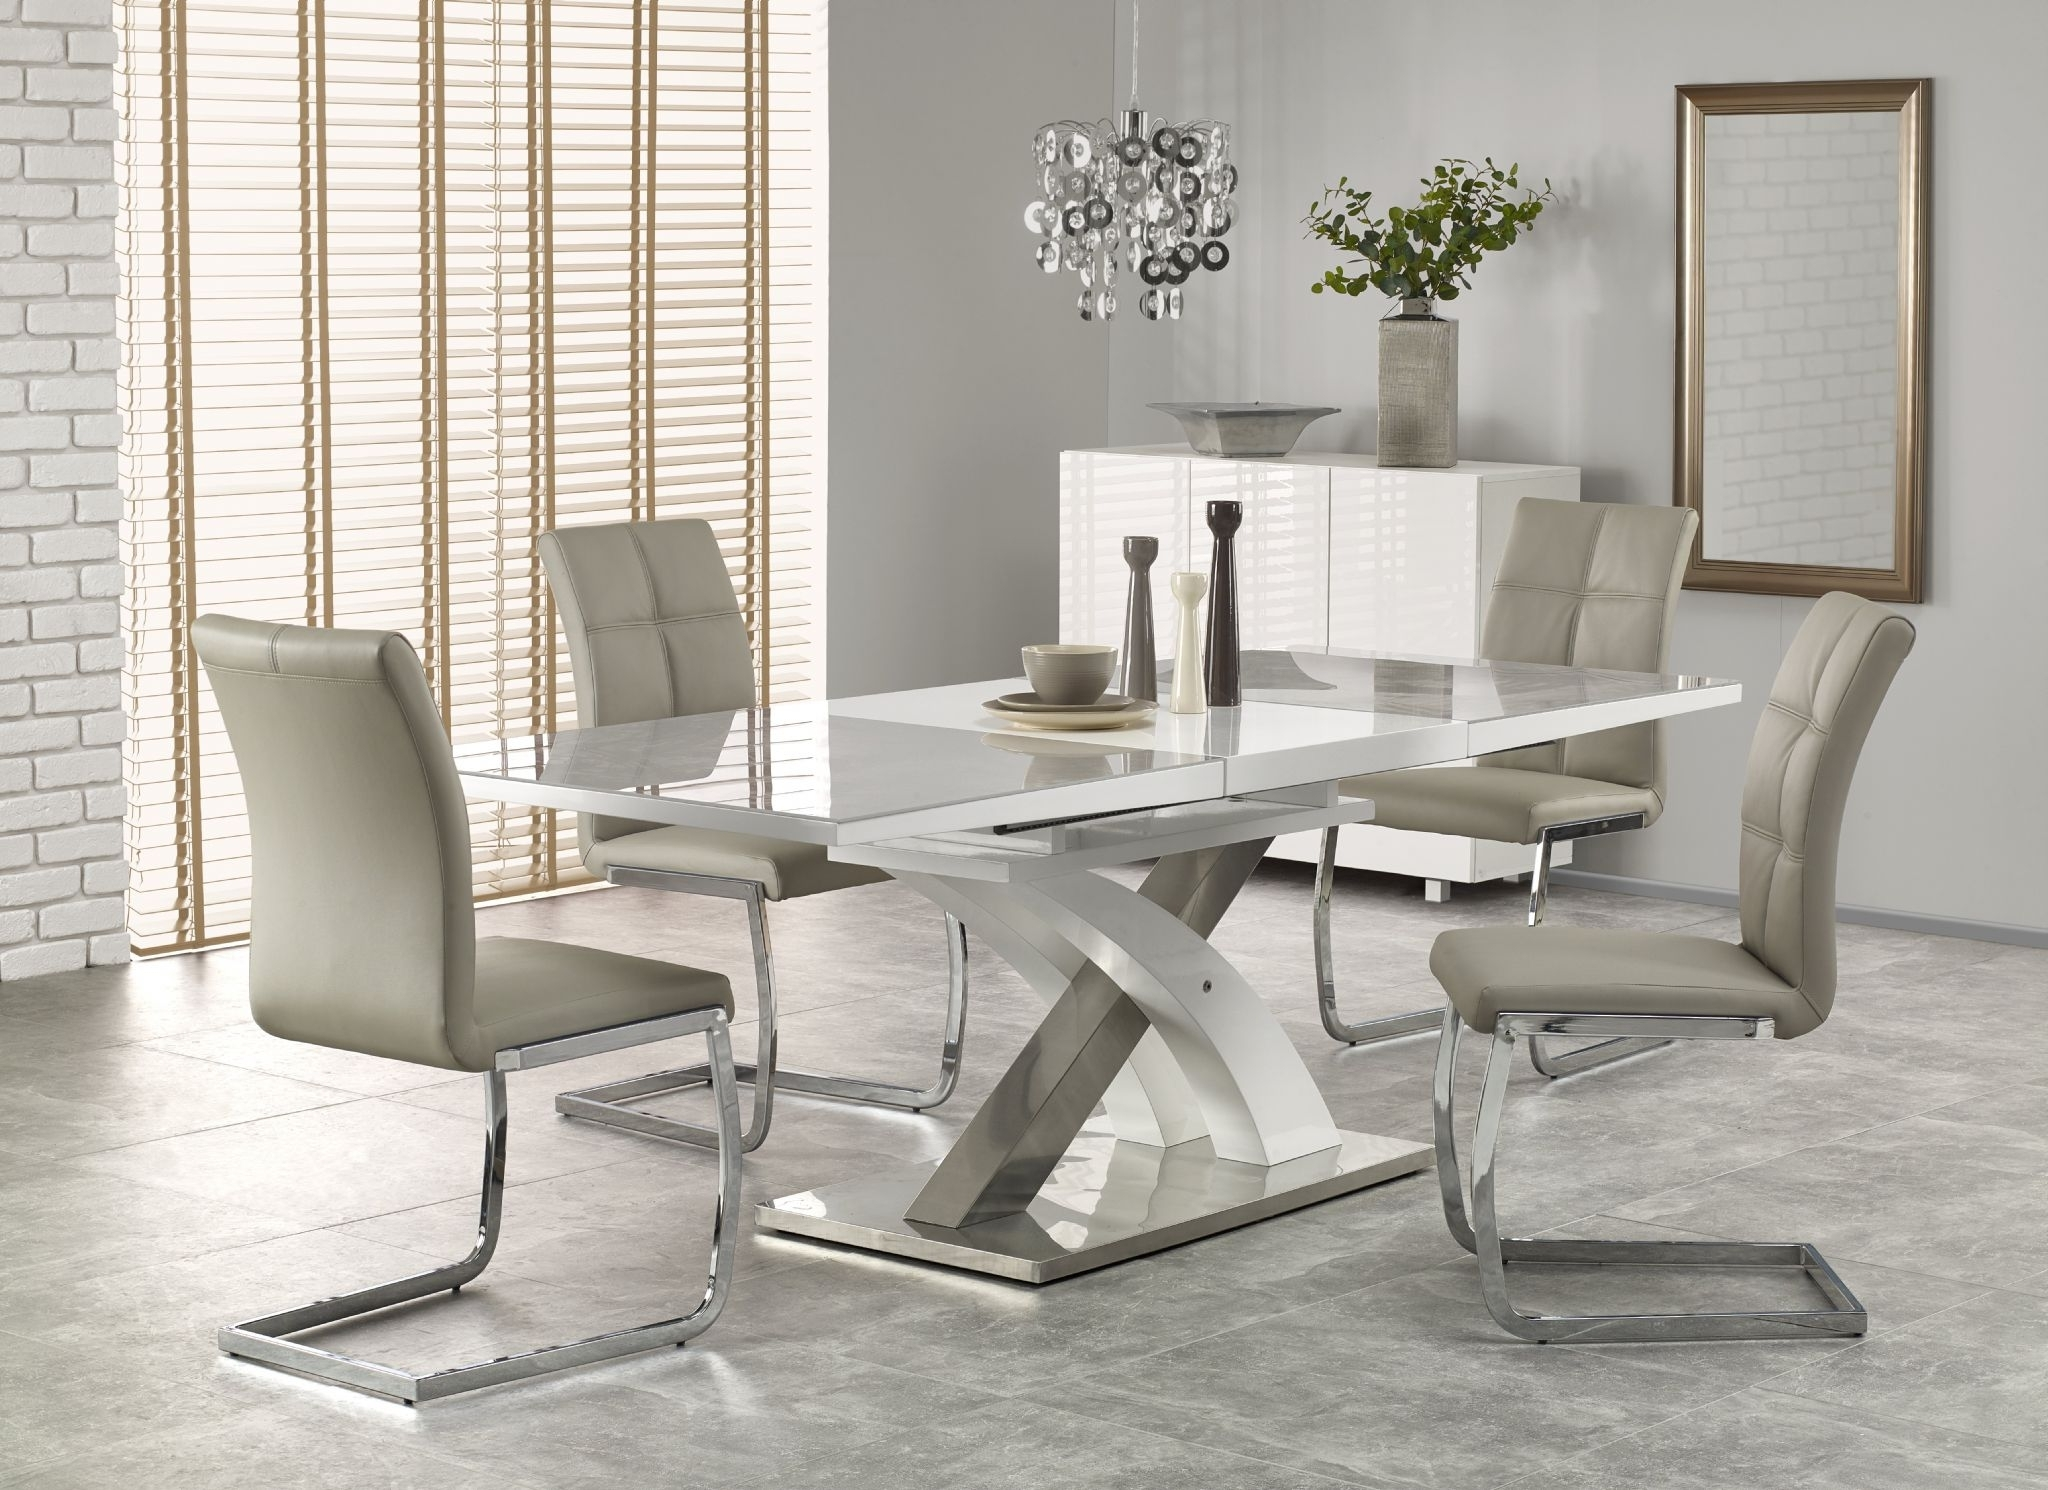 2017 White Gloss And Glass Dining Tables With Regard To Harmony White High Gloss & Grey Glass Extendable Dining Table (Gallery 21 of 25)